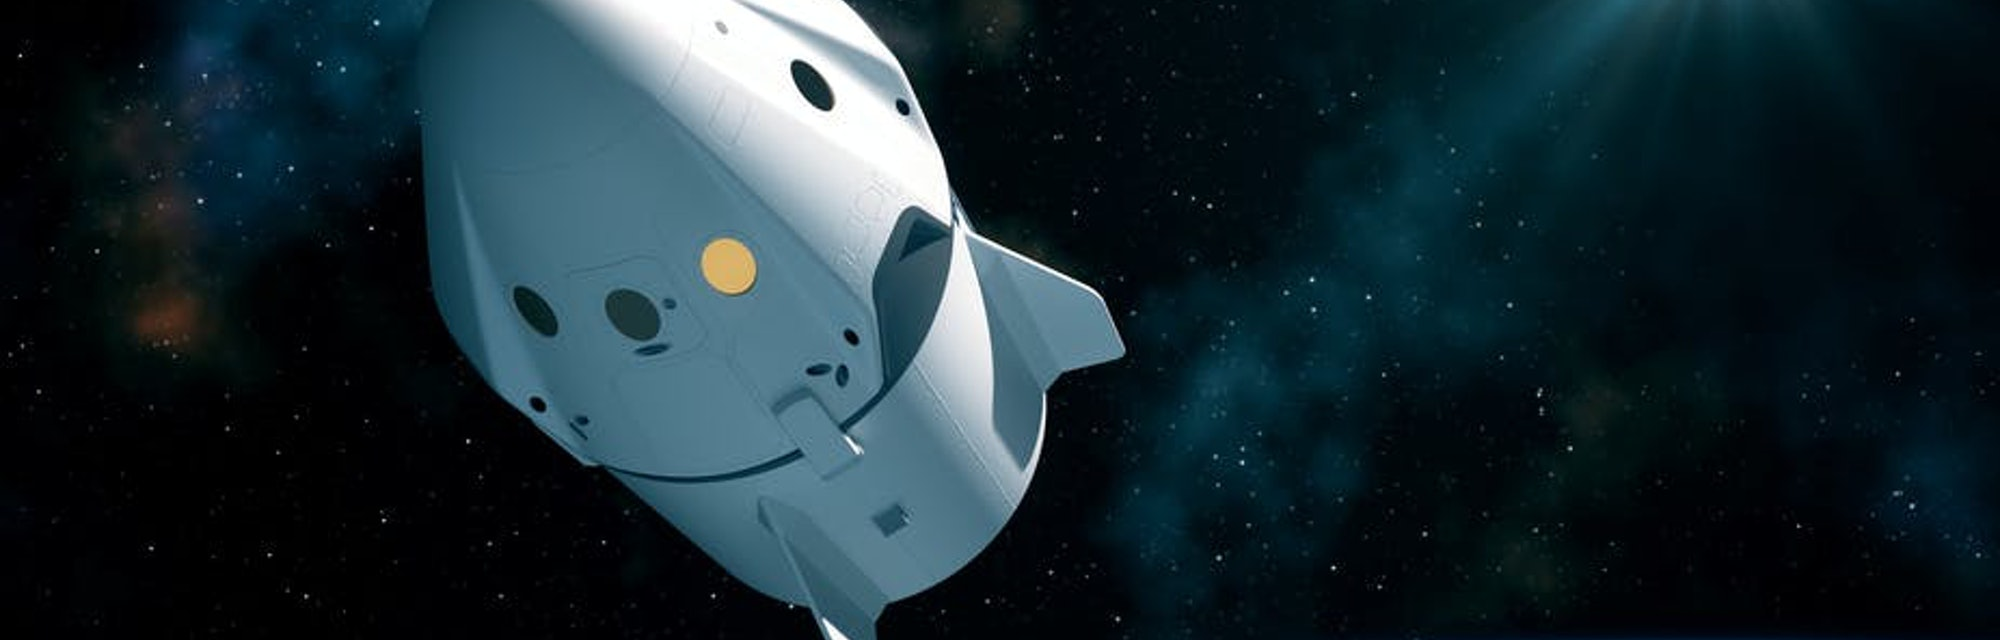 A capsular spacecraft, similar to this, will bring Crew Dragon into space.